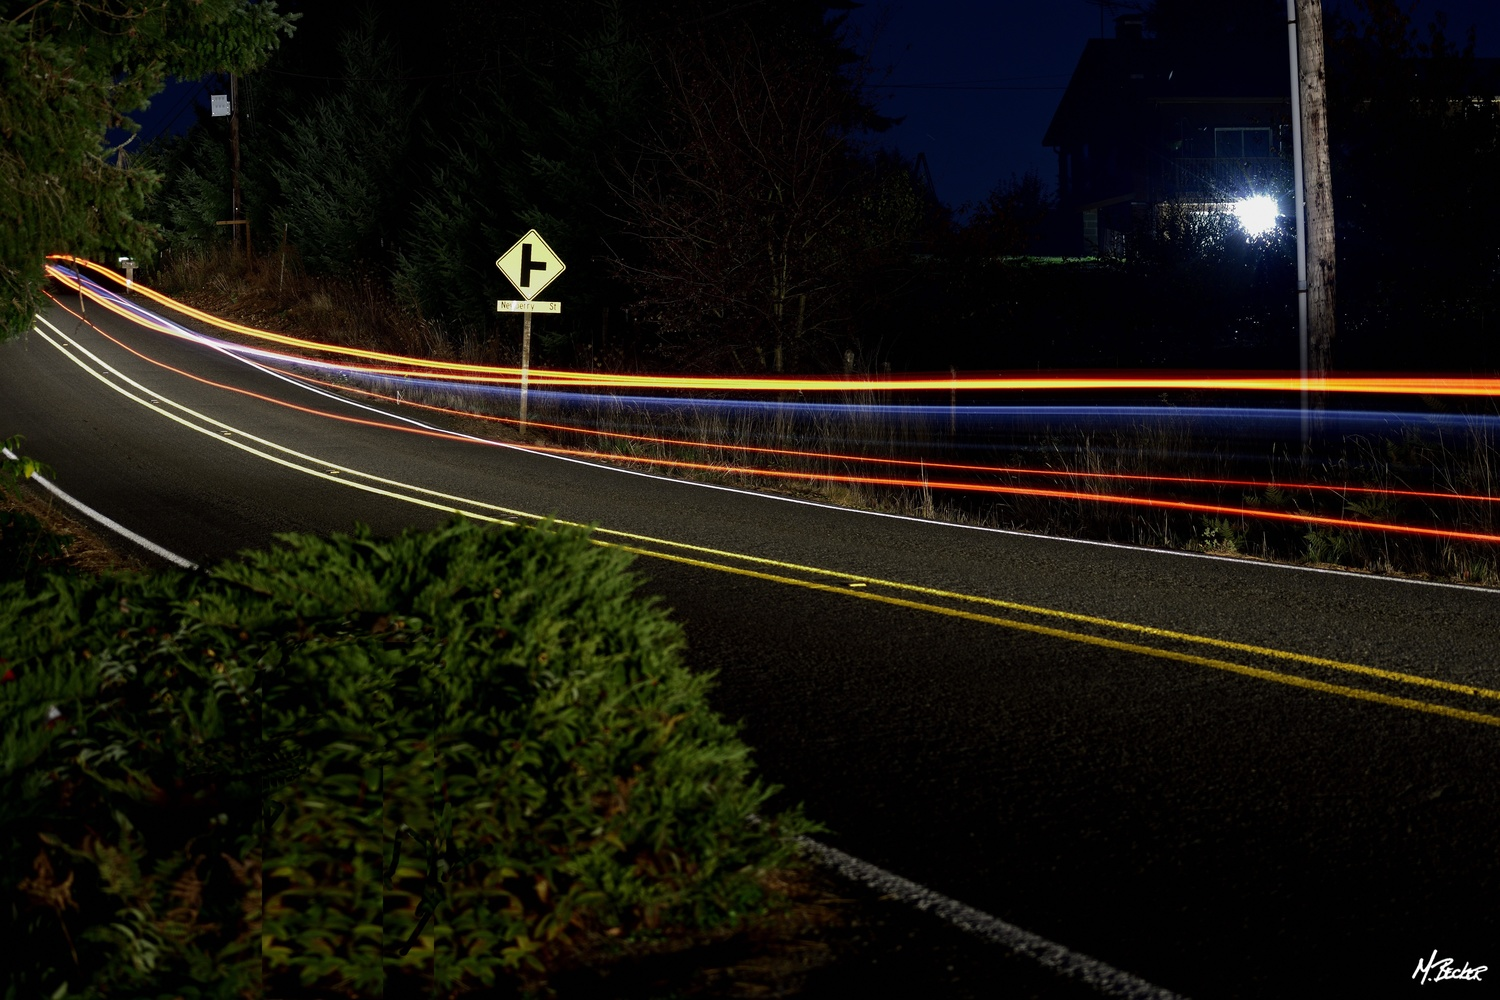 COUNTRY ROAD AT NIGHT by Michael Becker